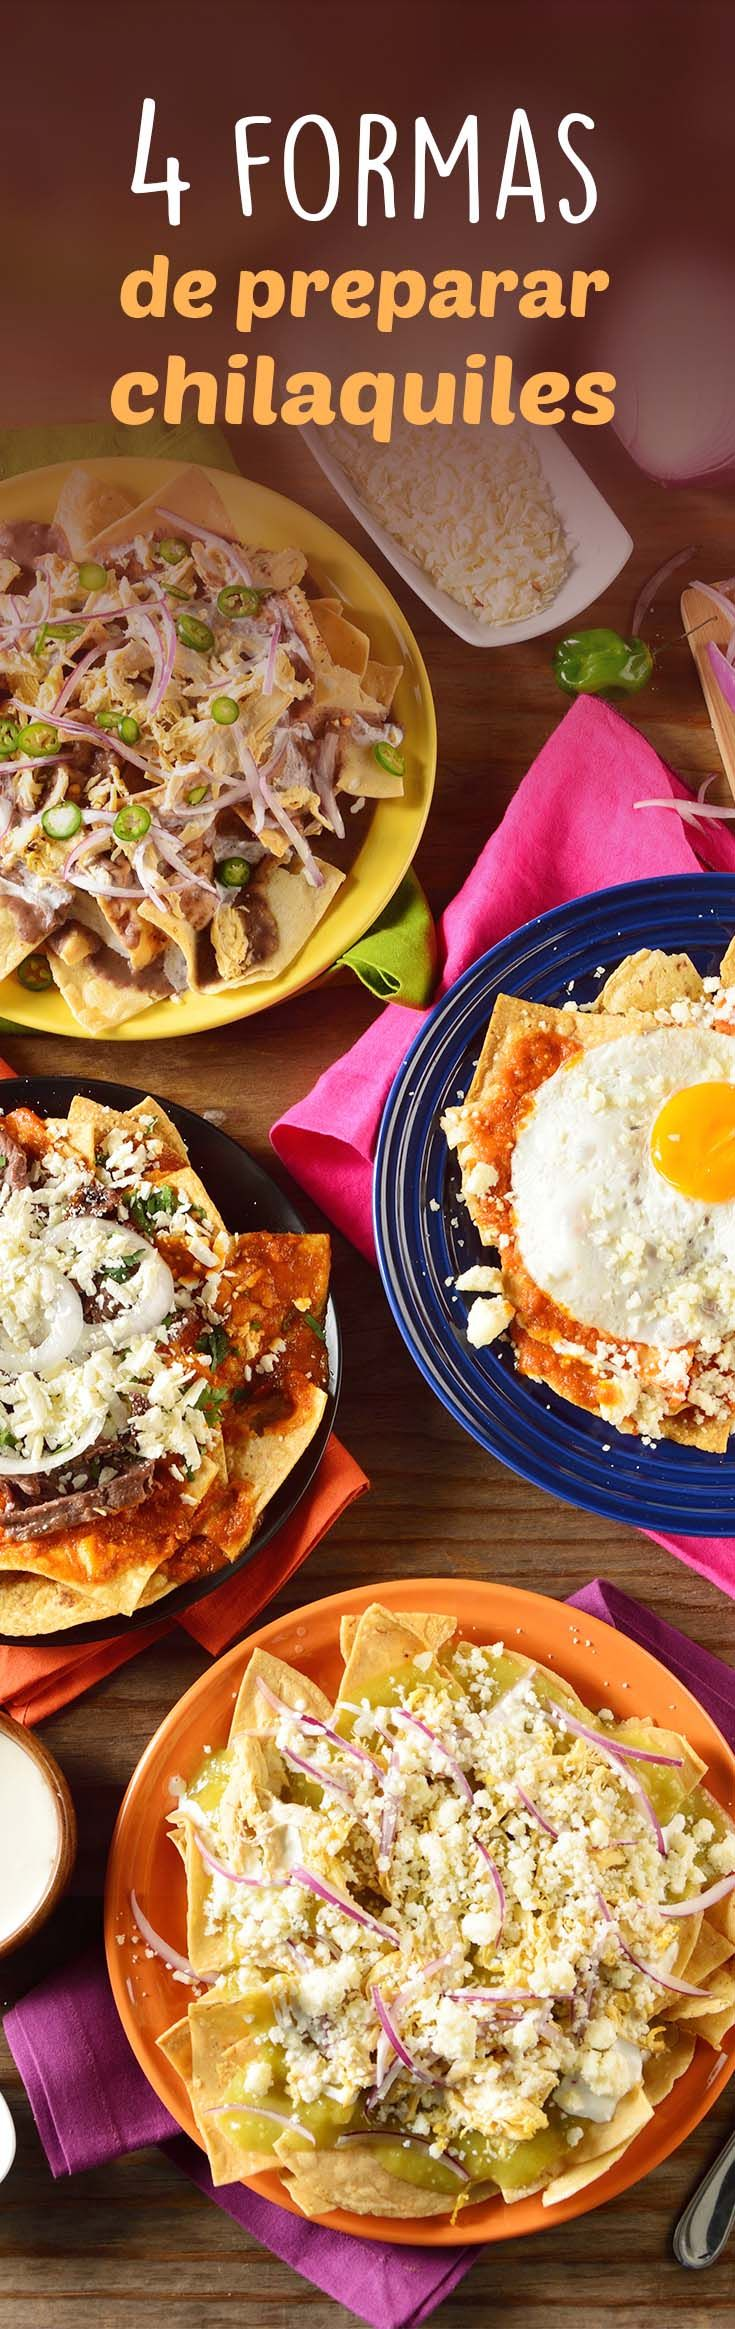 Chilaquiles  Pinterest | https://pinterest.com/elcocinillas/